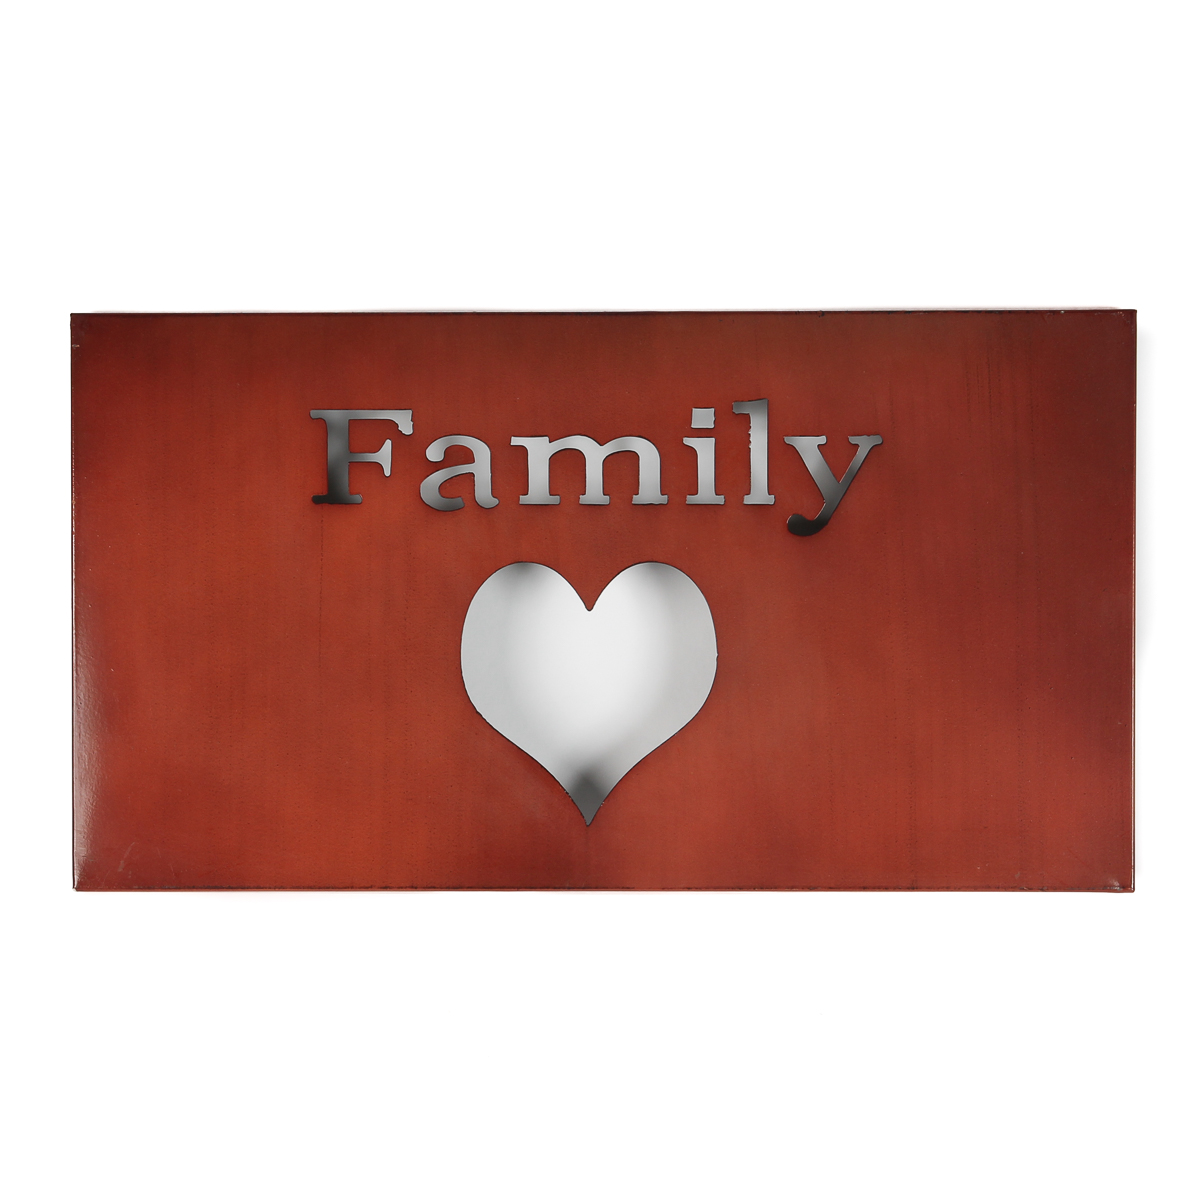 Family Word Home Decor Metal Wall Art ~ Family heart metal wall art love motivational word sign